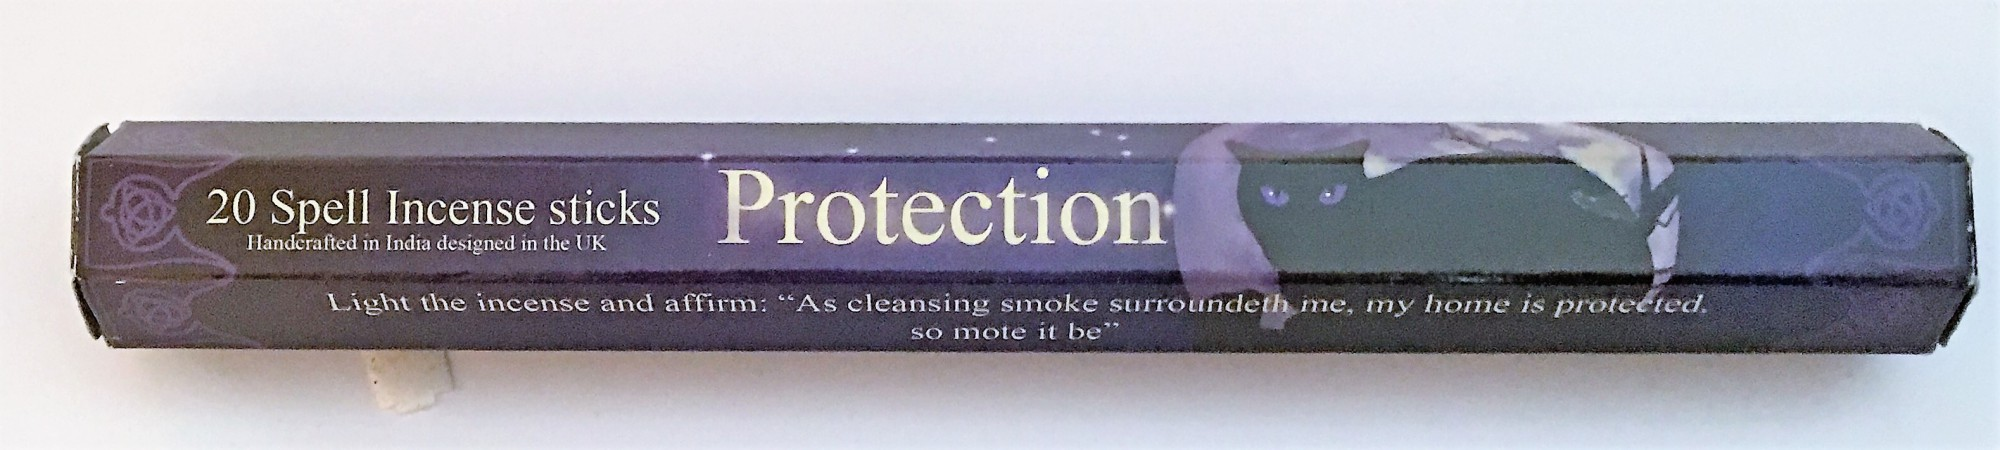 Protection Spell Incense Sticks | Incense | Www